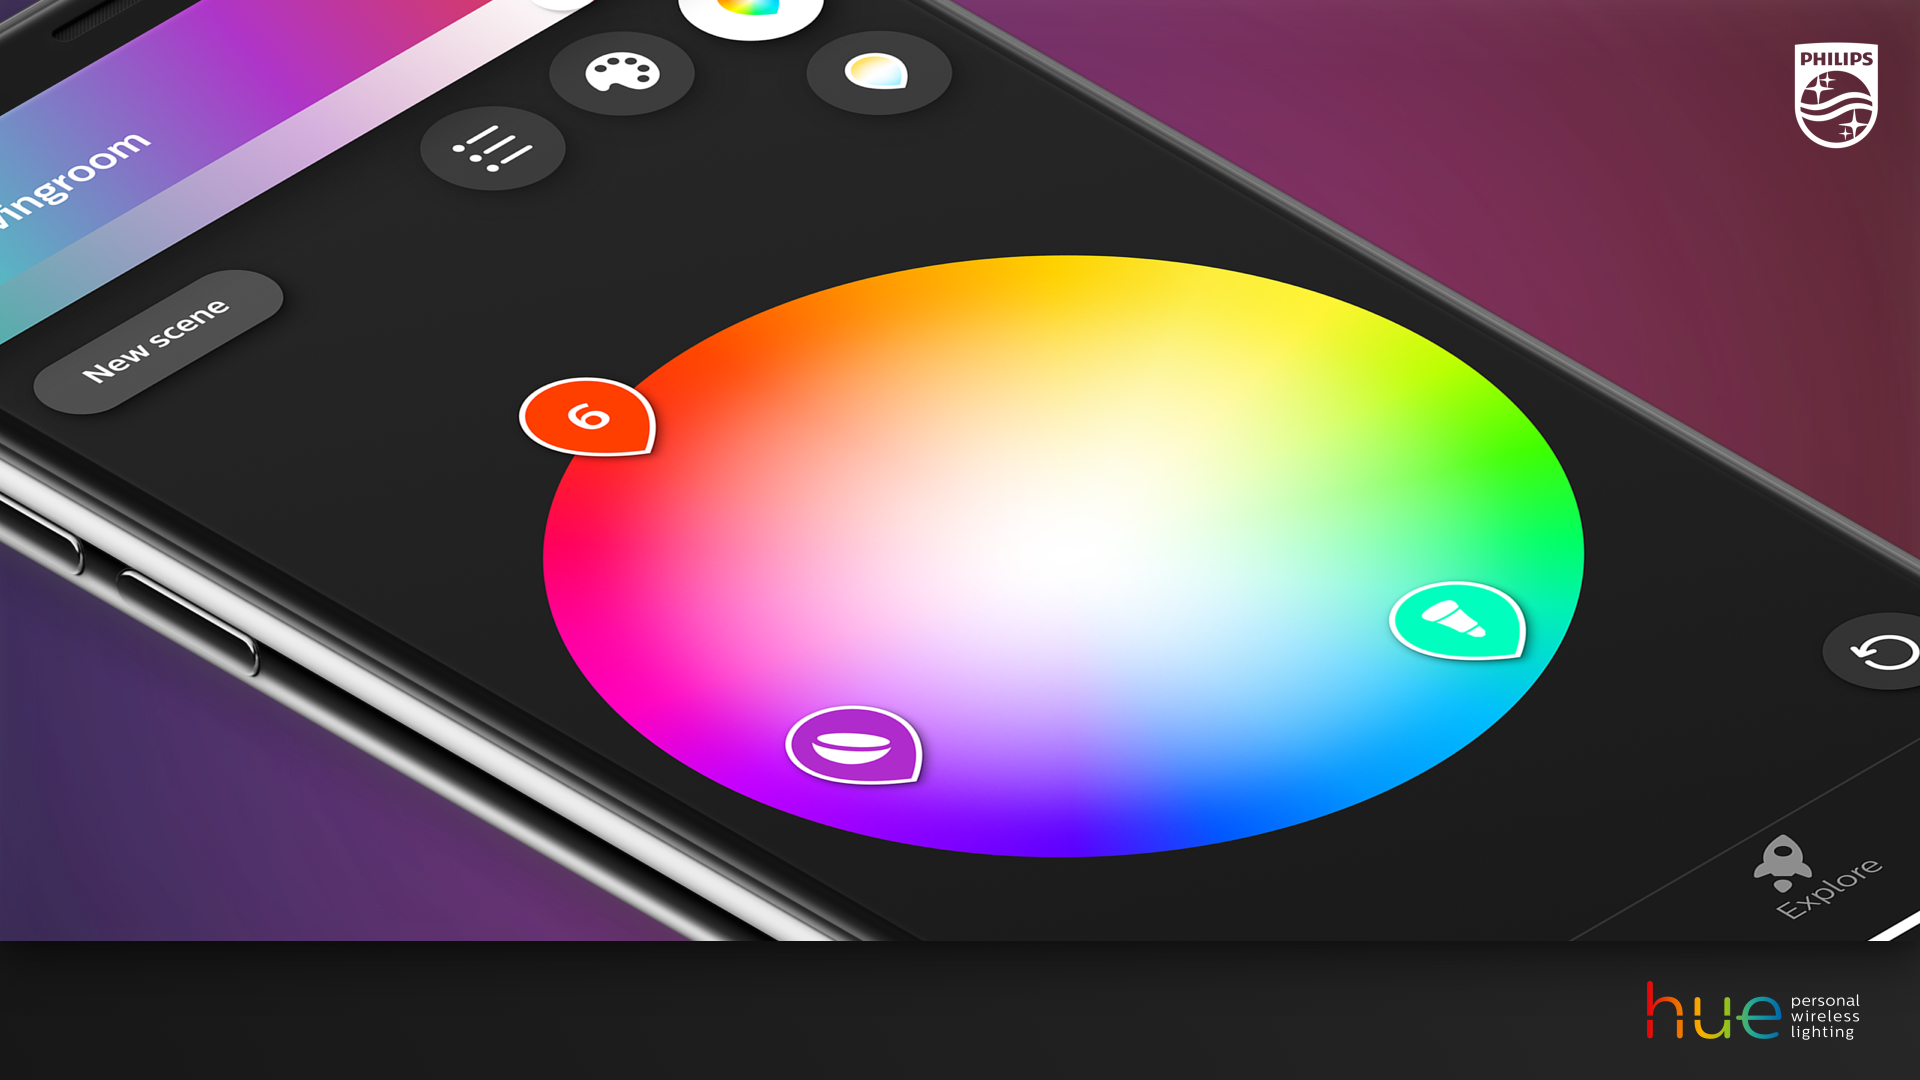 philips-hue-app-3-0-color-pickers